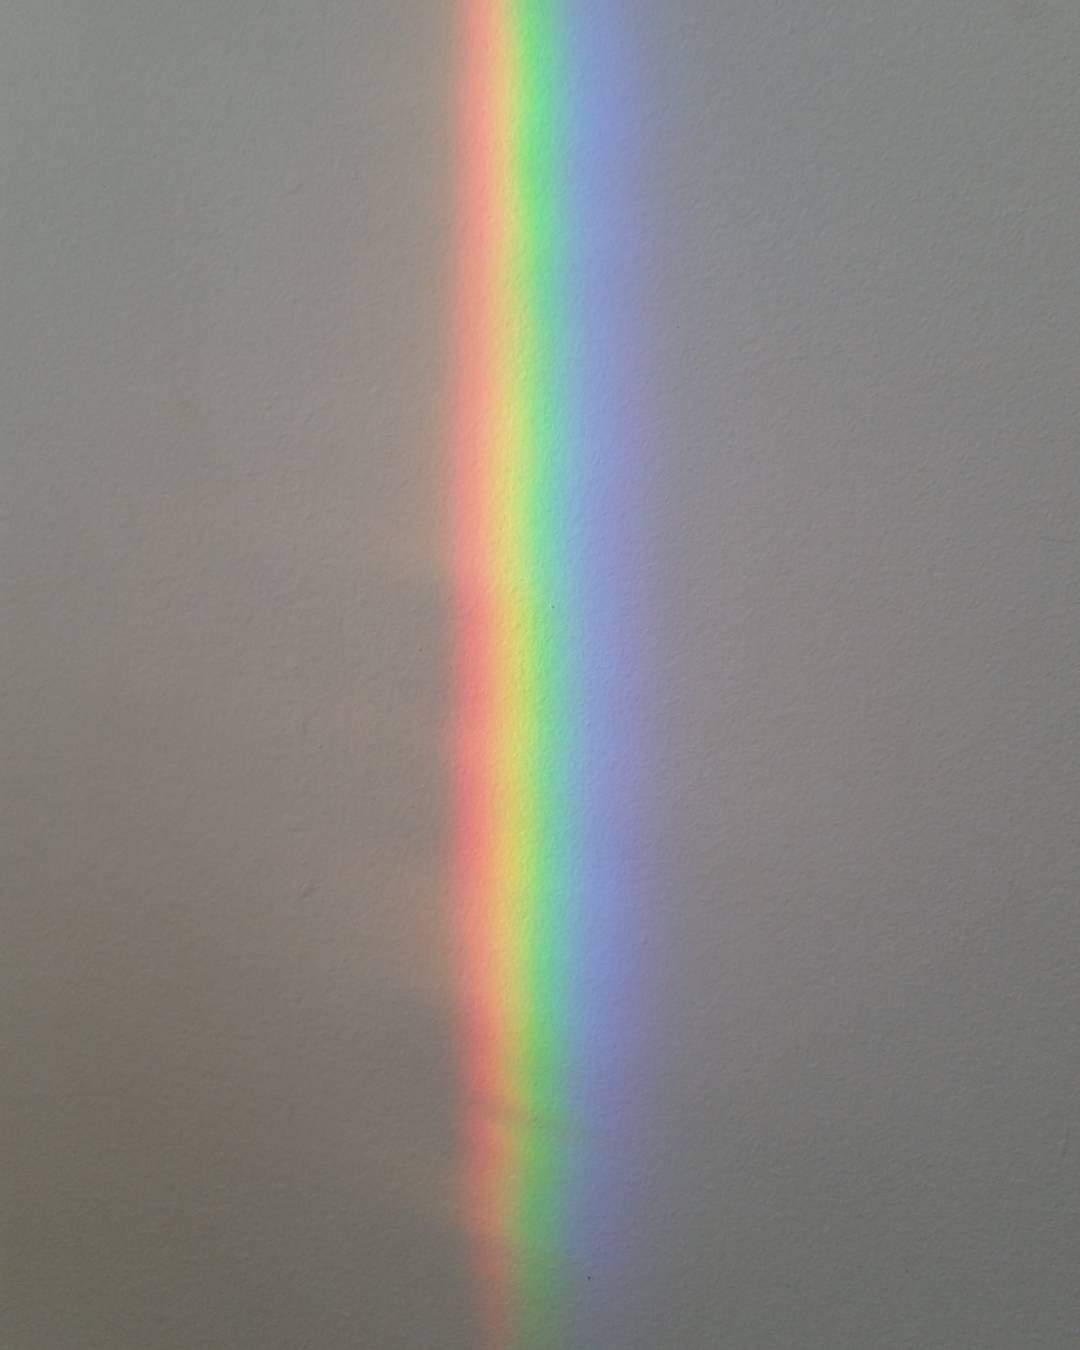 Pin By Nanchy On All Rainbow Aesthetic Rainbow Photography Light And Shadow Photography